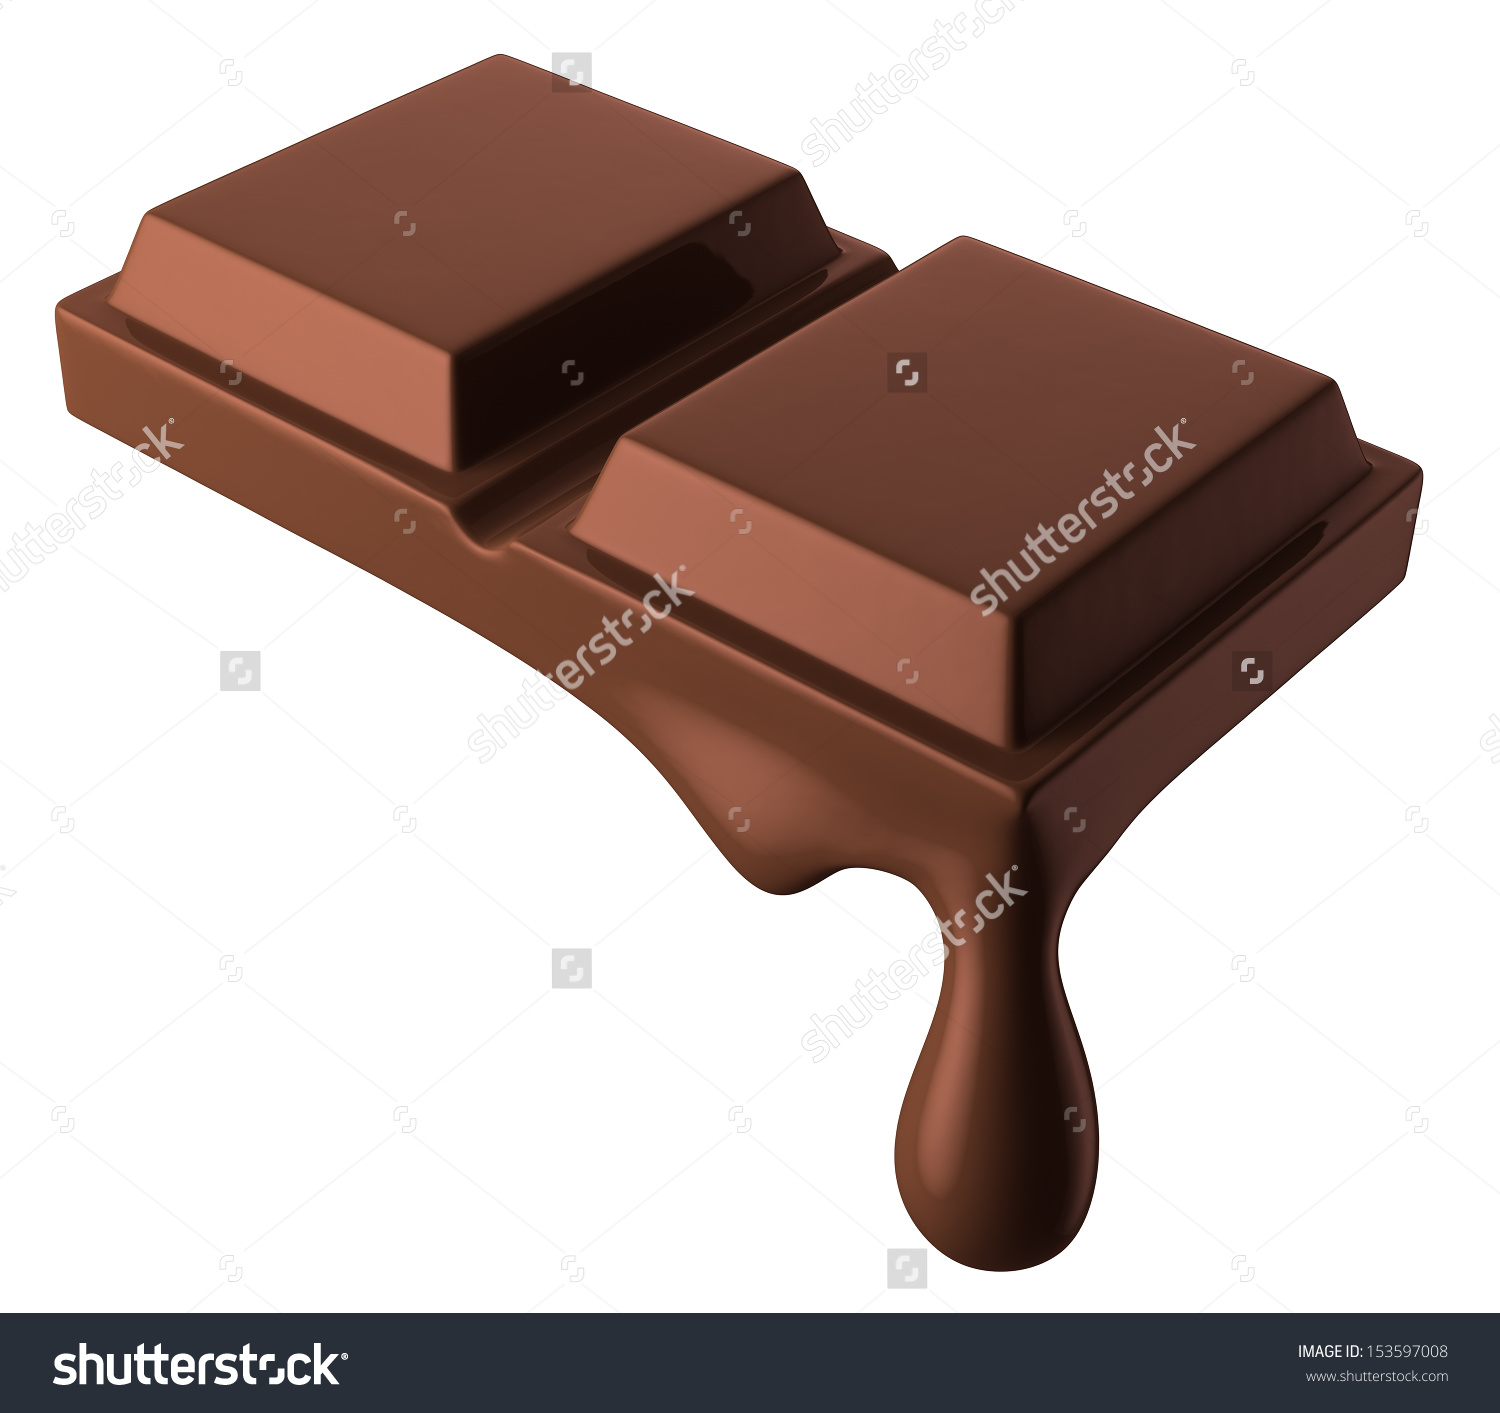 Bar clipart sweet chocolate Clipart collection Melting chocolate bar